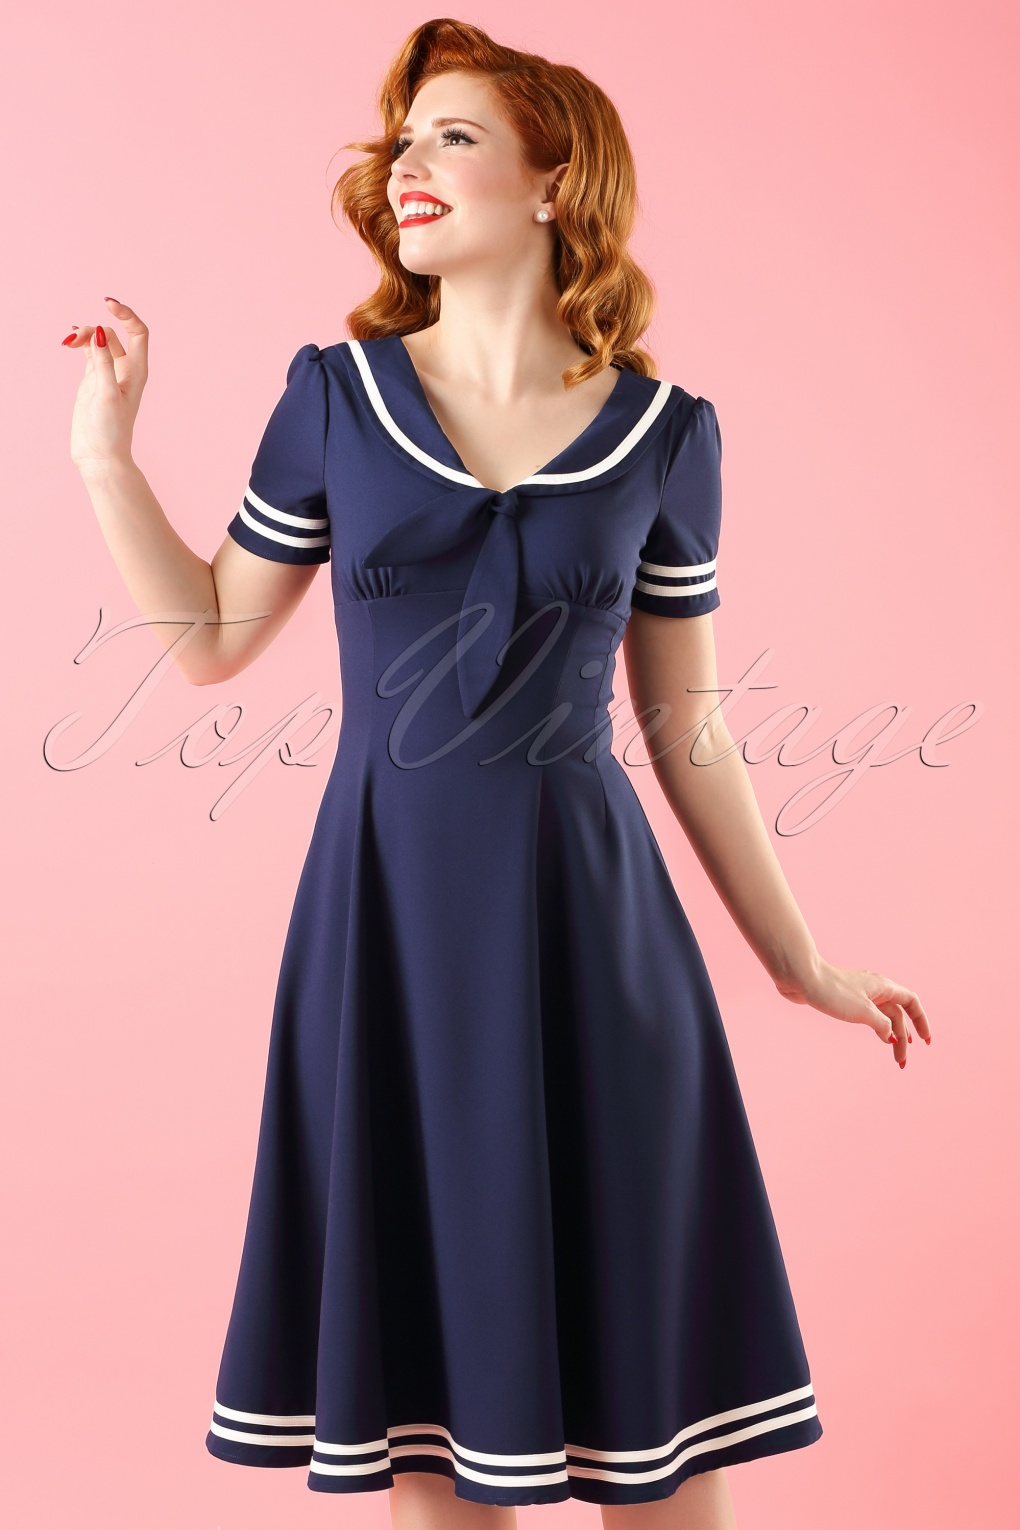 1940s Plus Size Fashion: Style Advice from 1940s to Today 50s Ambleside Swing Dress in Navy £52.83 AT vintagedancer.com